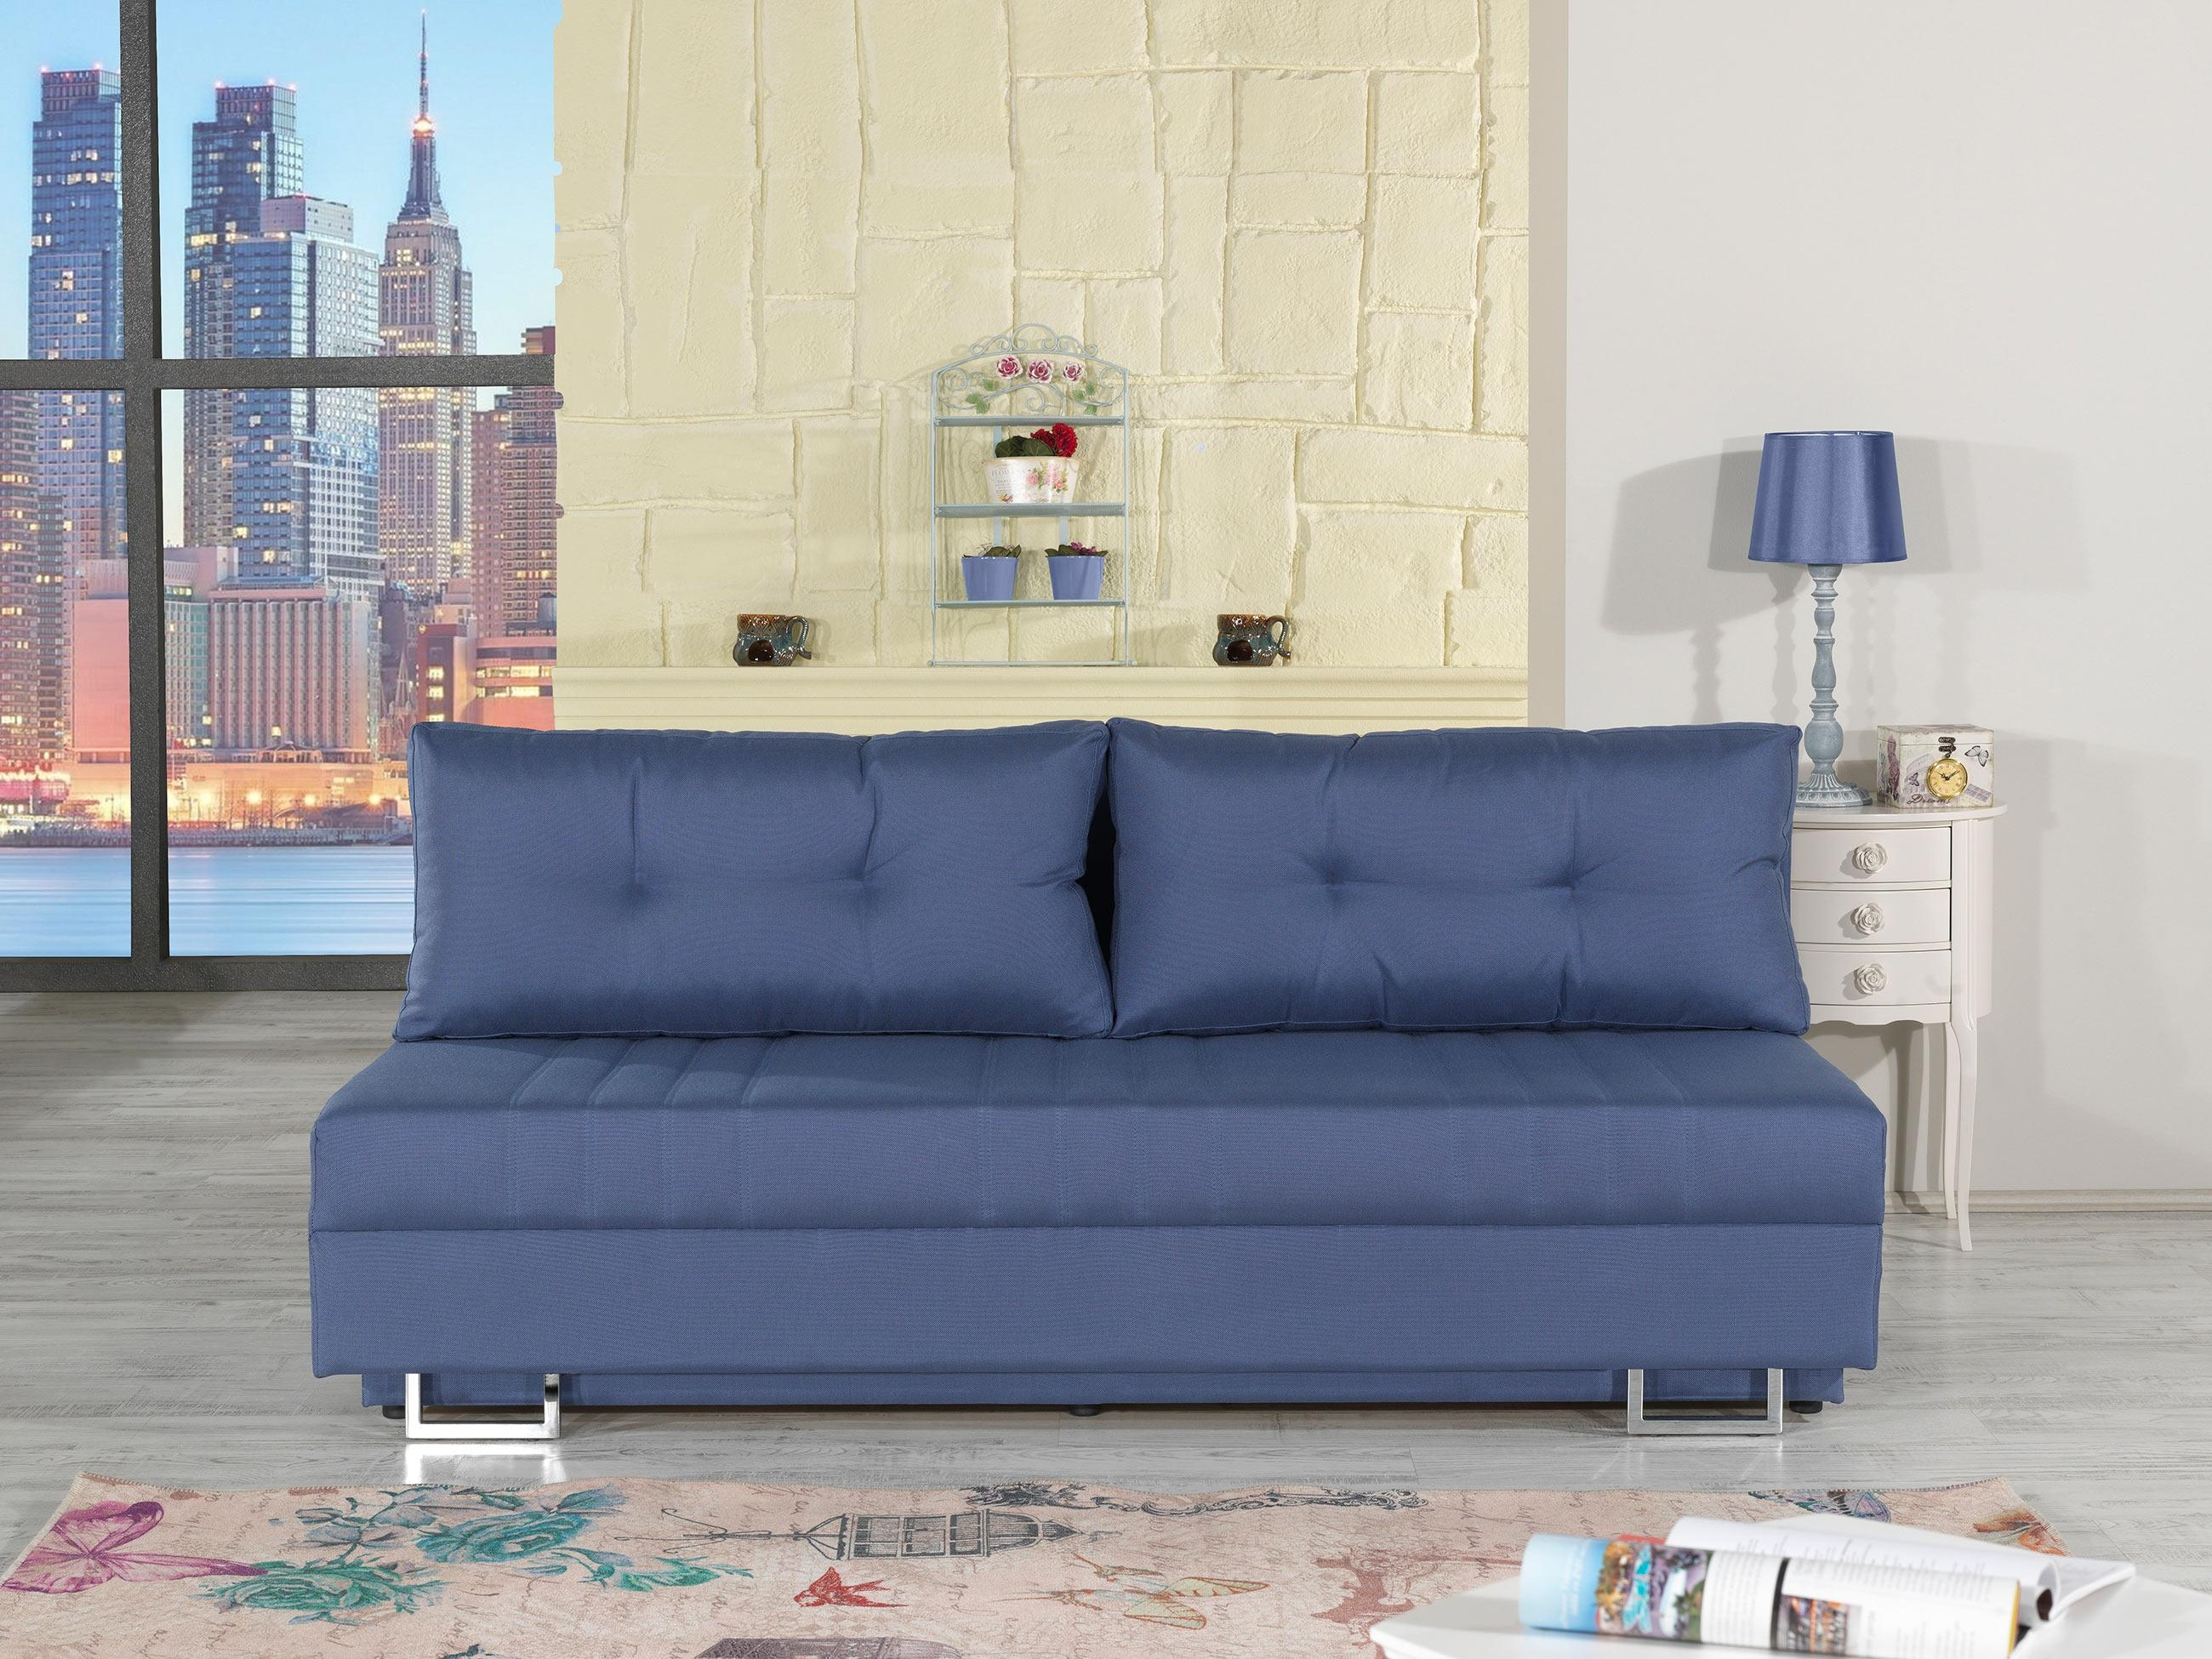 Flex Motion Blue Queen Sofa Bed W/ Storagecasamode Pertaining To Queen Sofa Beds (View 15 of 20)